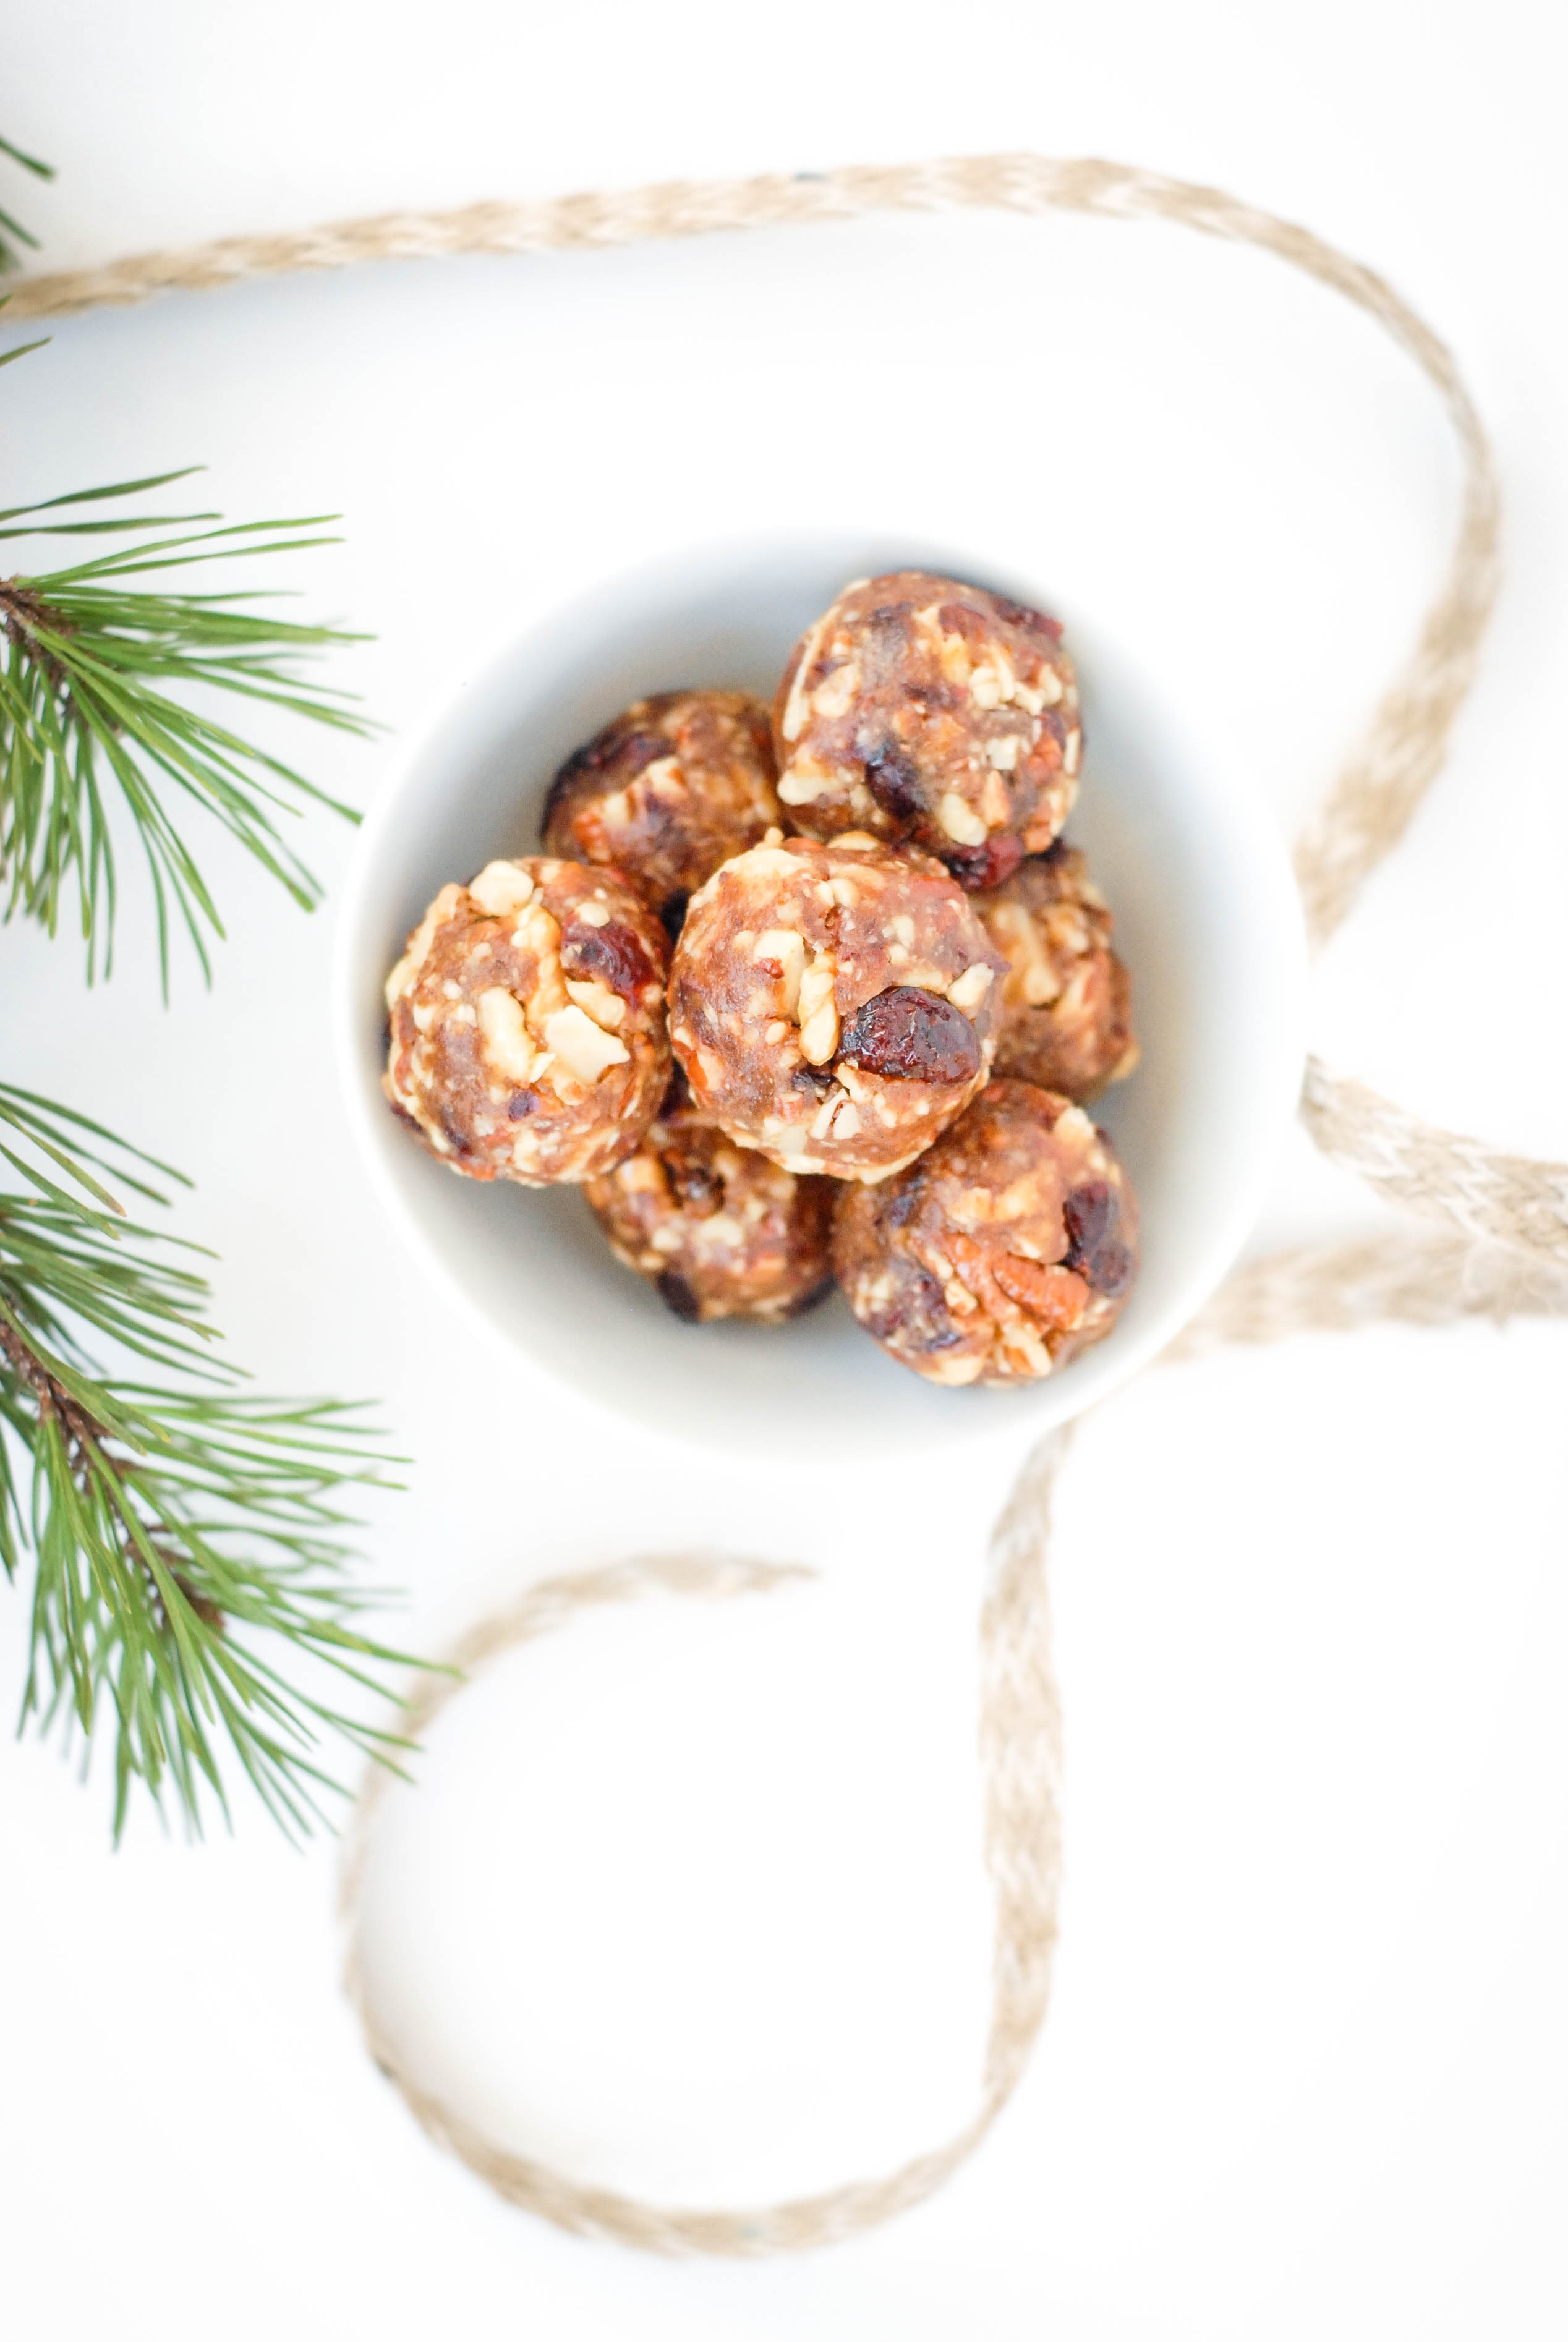 Date Nut Balls Recipe | Rice Krispy, Date and Nut Balls |